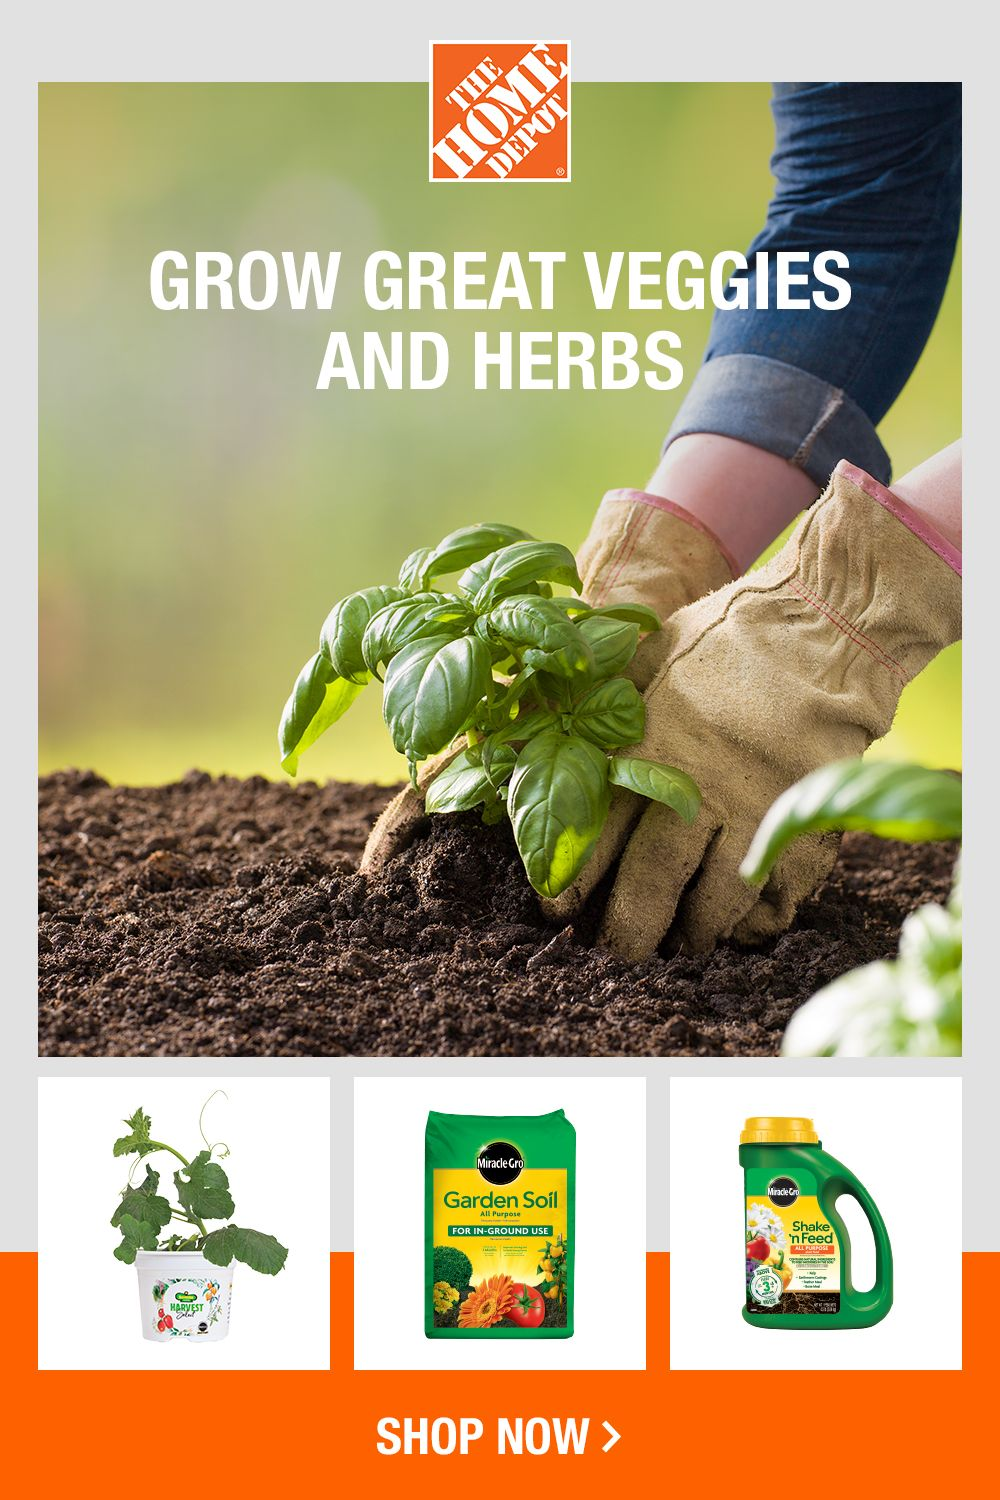 To grow good produce, you need good soil, plants and plant